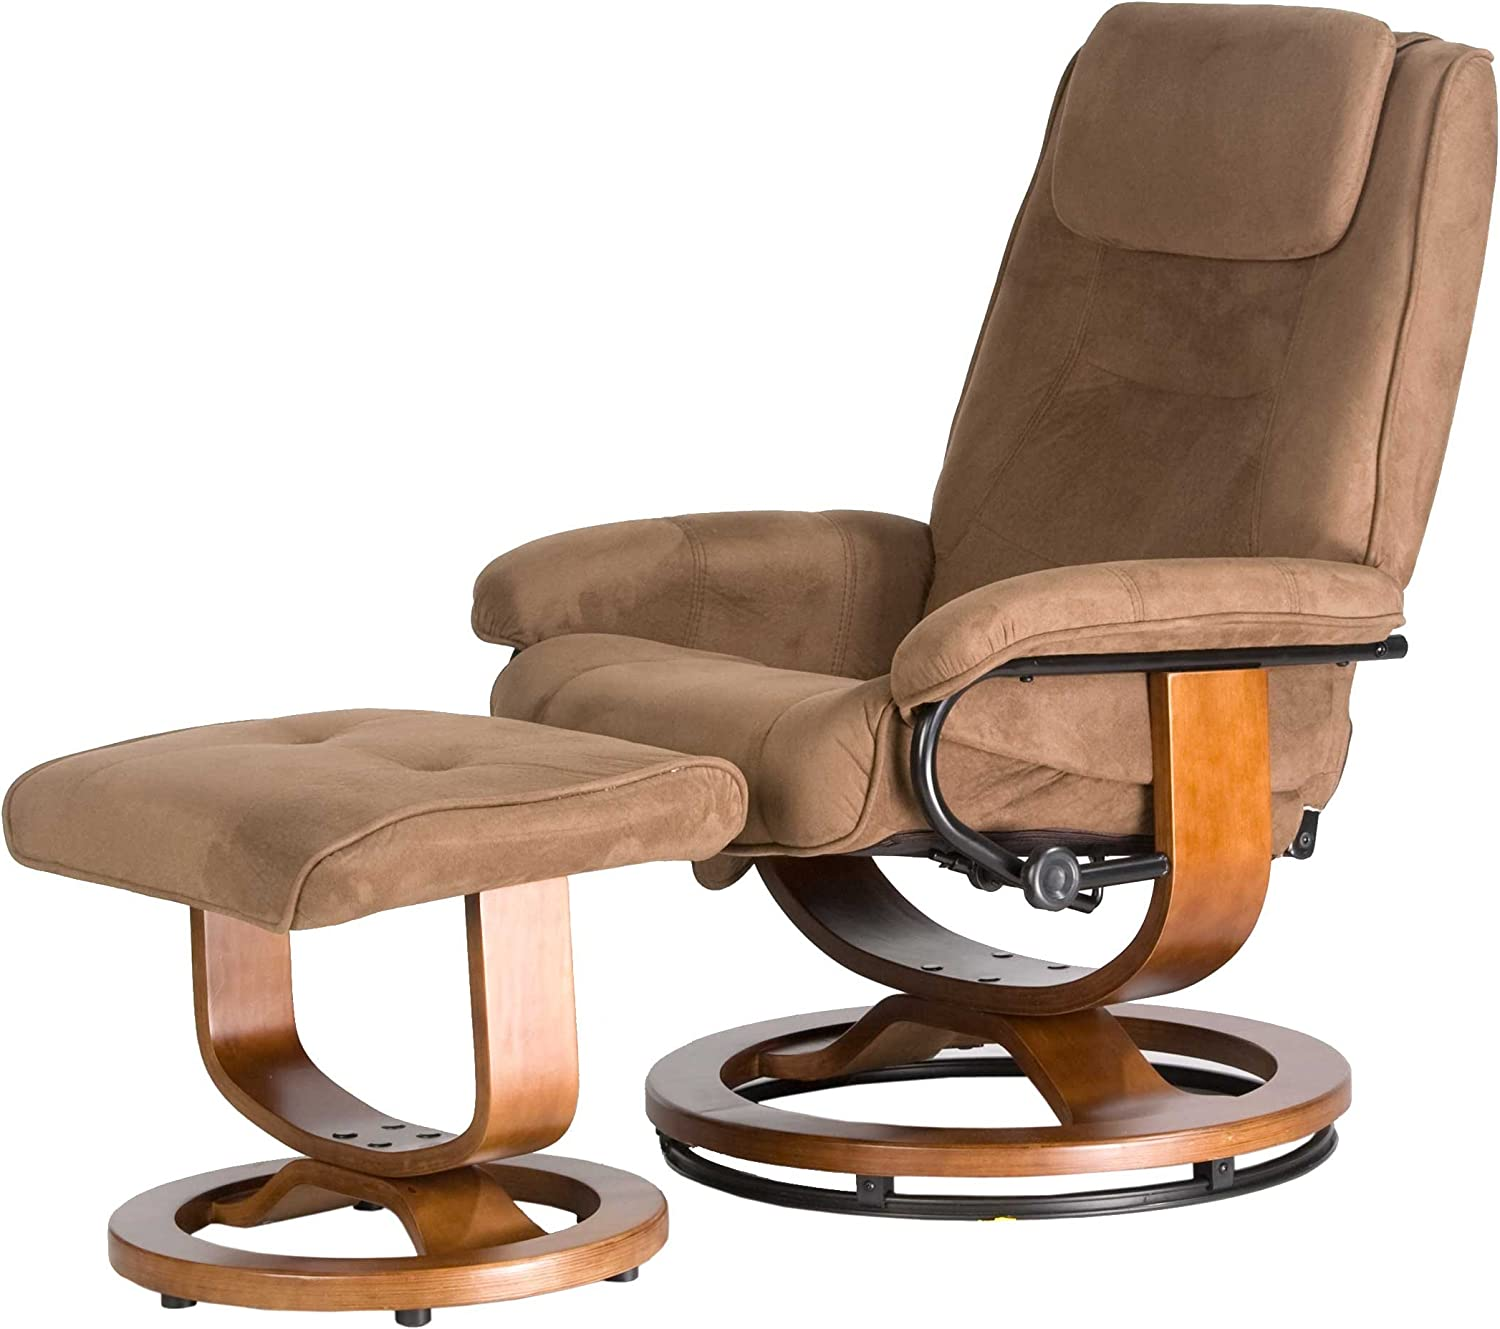 71JeUV4OabL. AC SL1500 - What Are The Best Living Room Chair For Lower Back Pain - ChairPicks